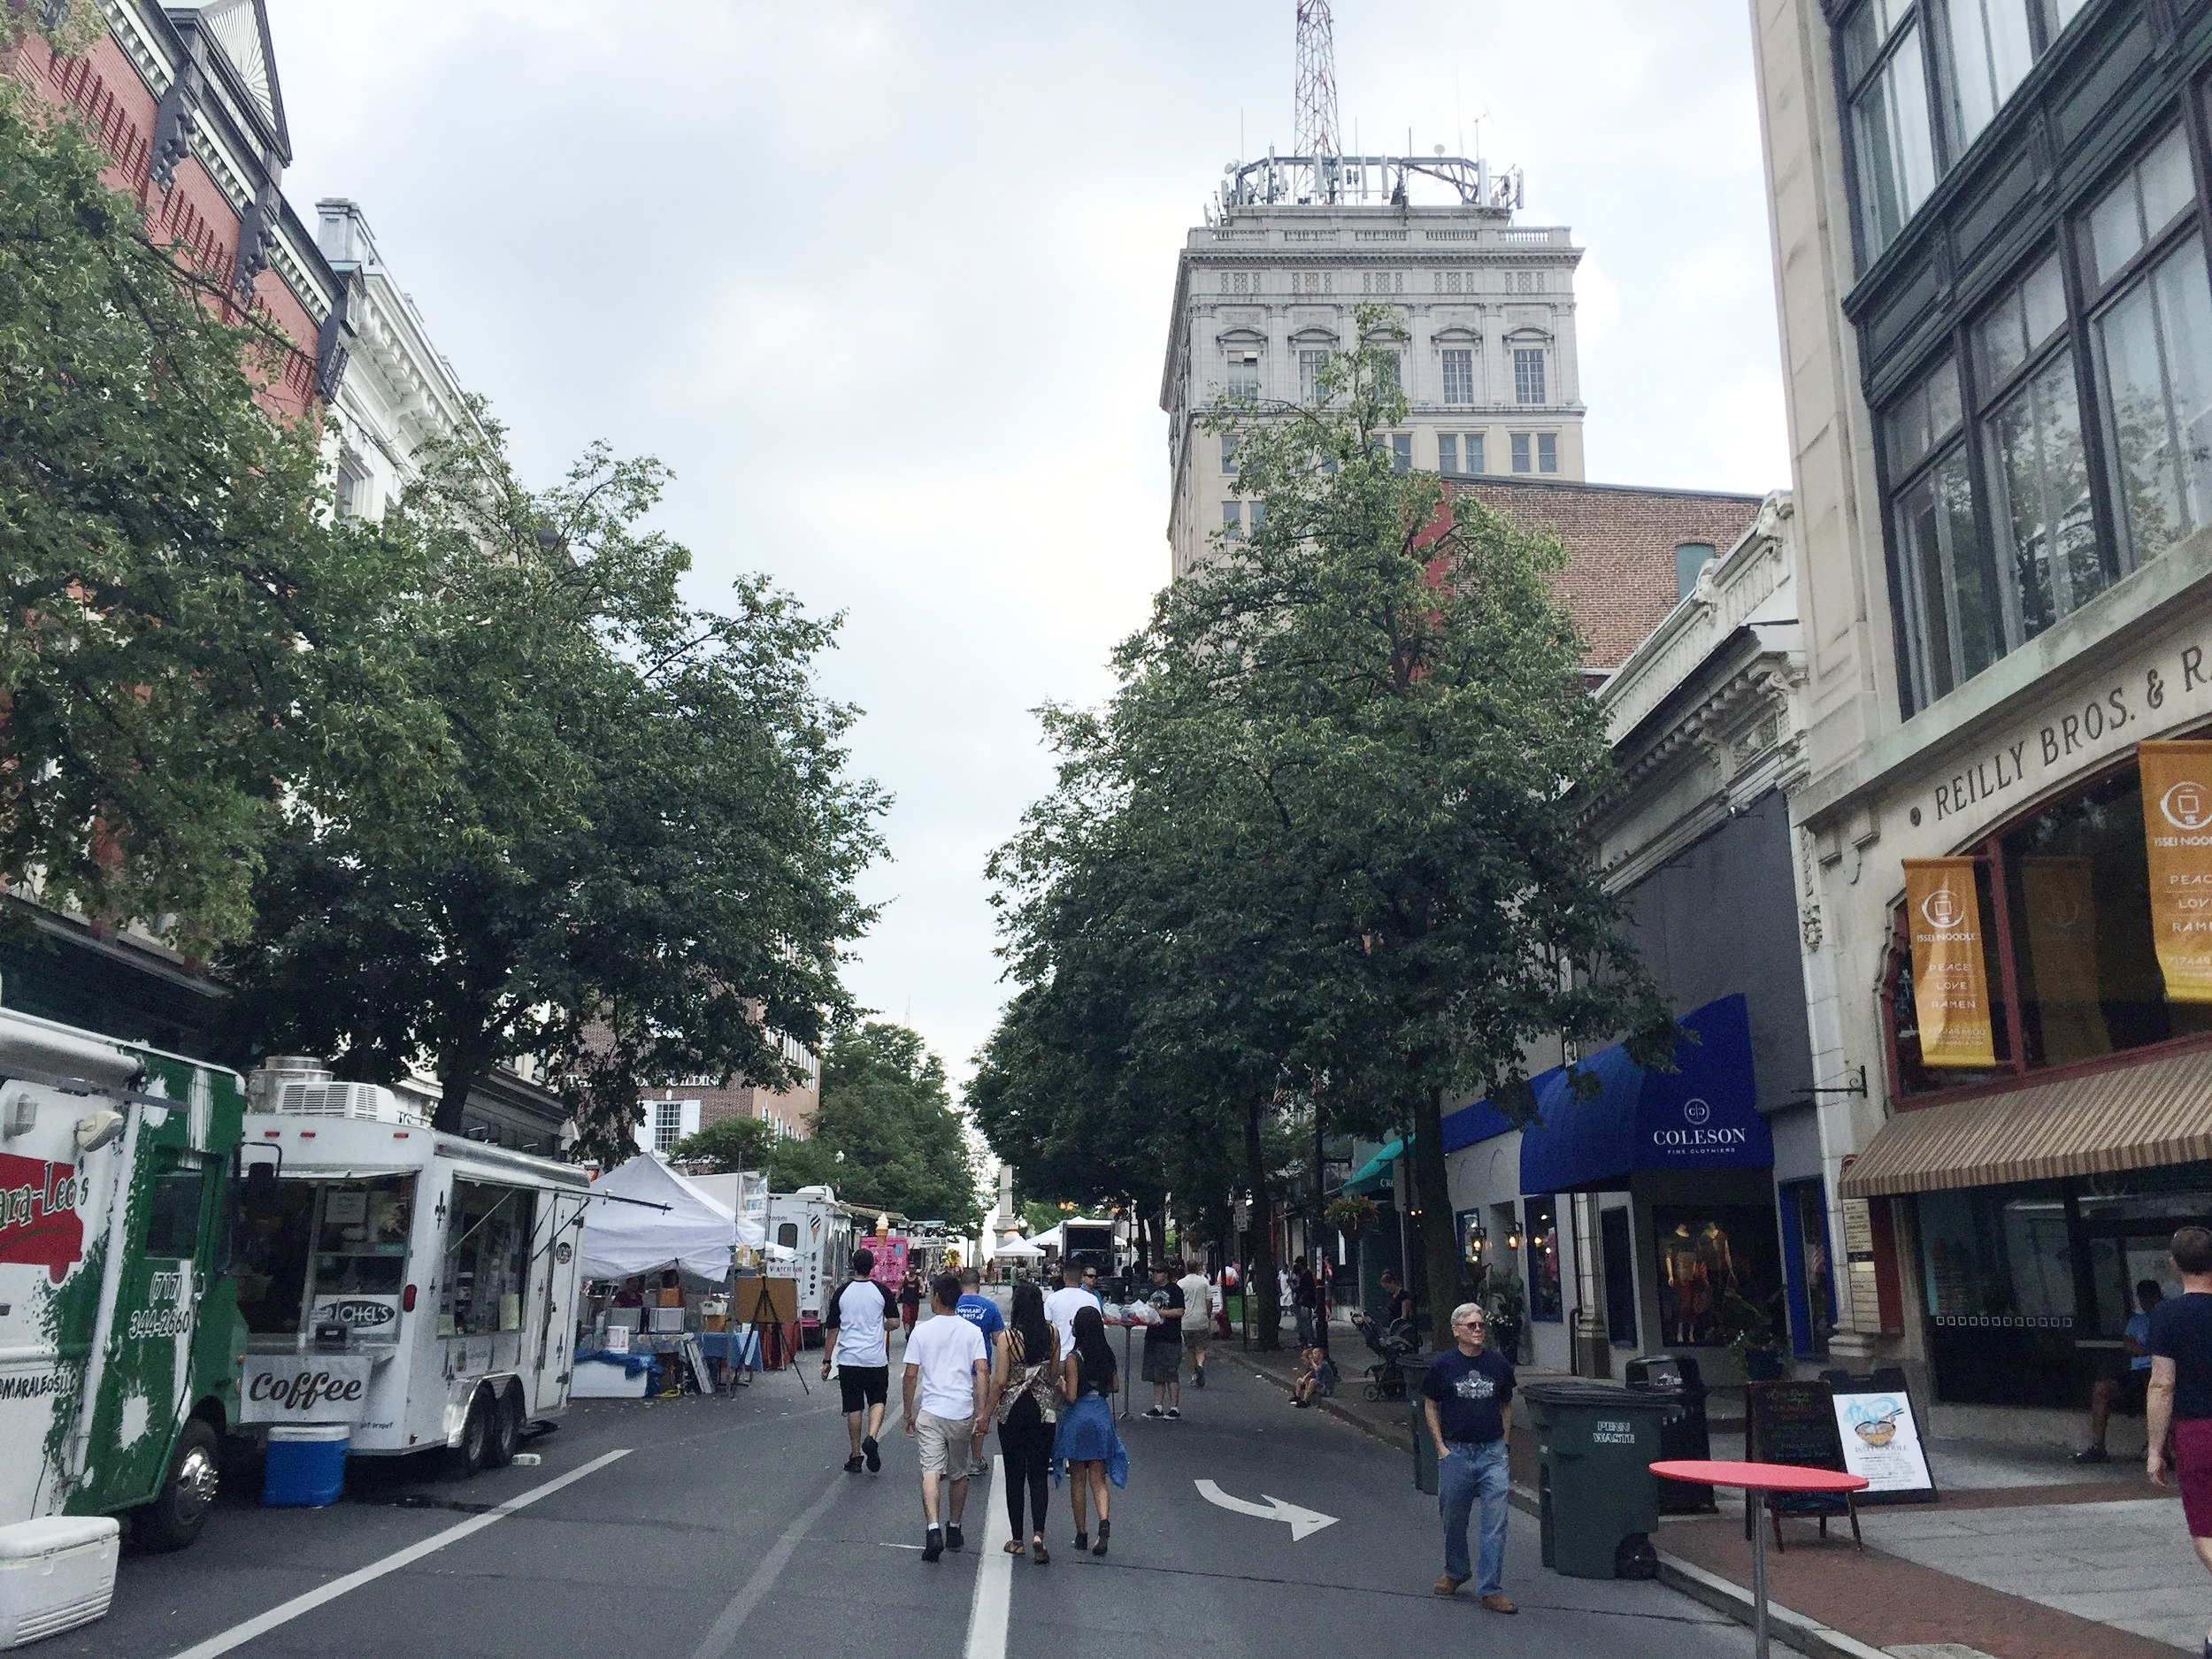 Queen Street in Downtown Lancaster during a street Festival